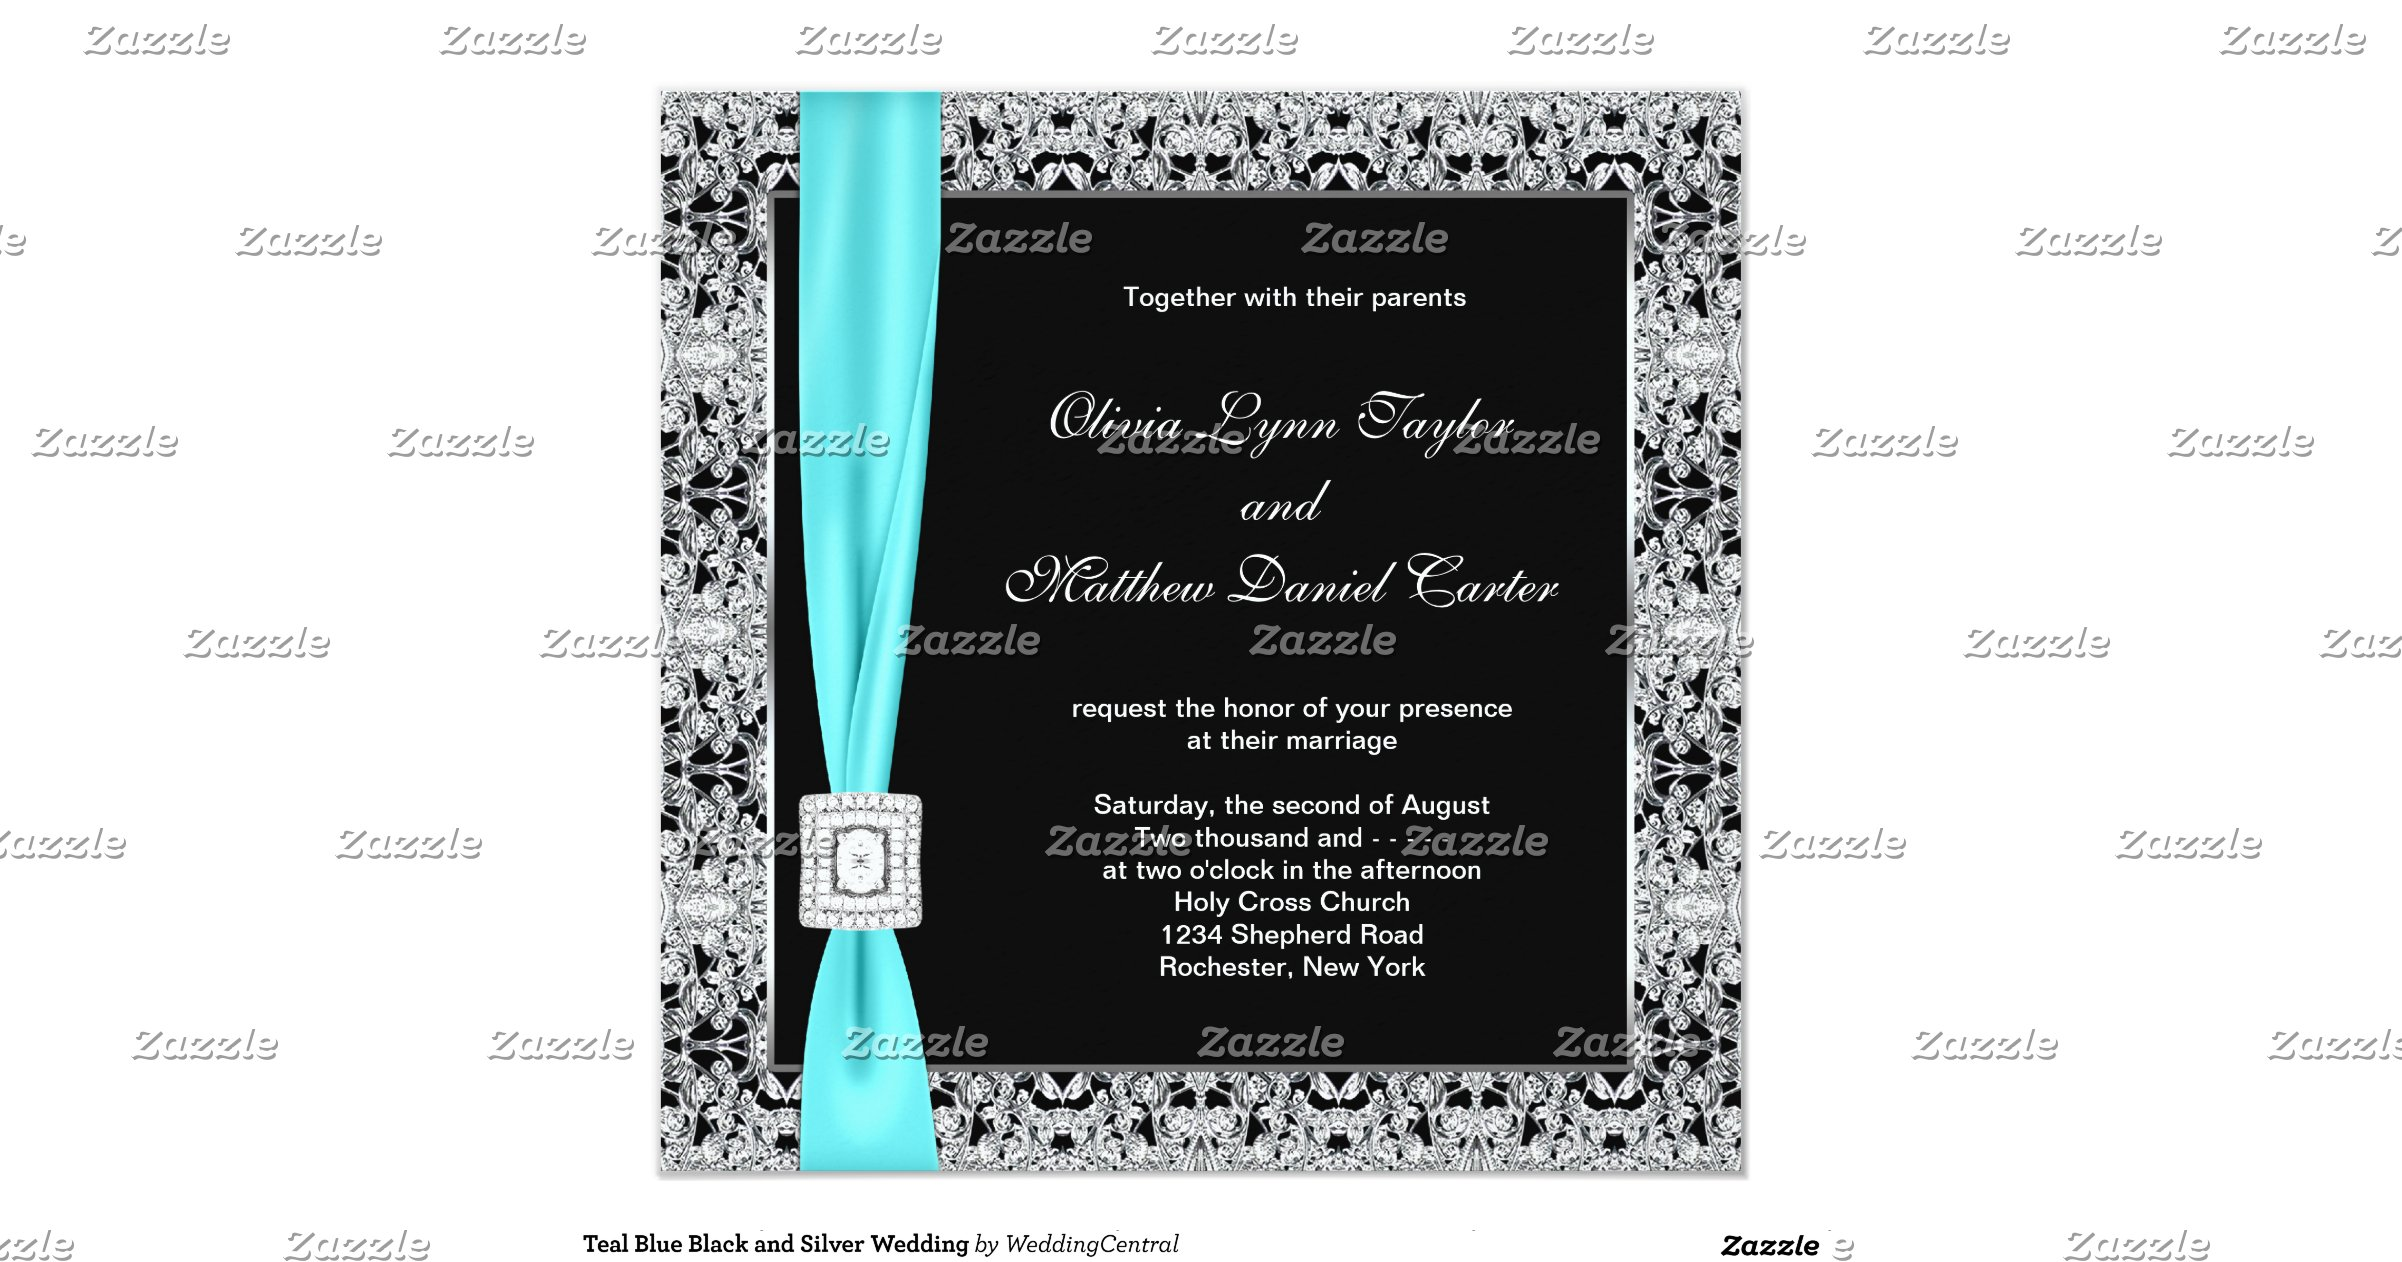 Dark Blue Wedding Invitations: Teal_blue_black_and_silver_wedding_invitation